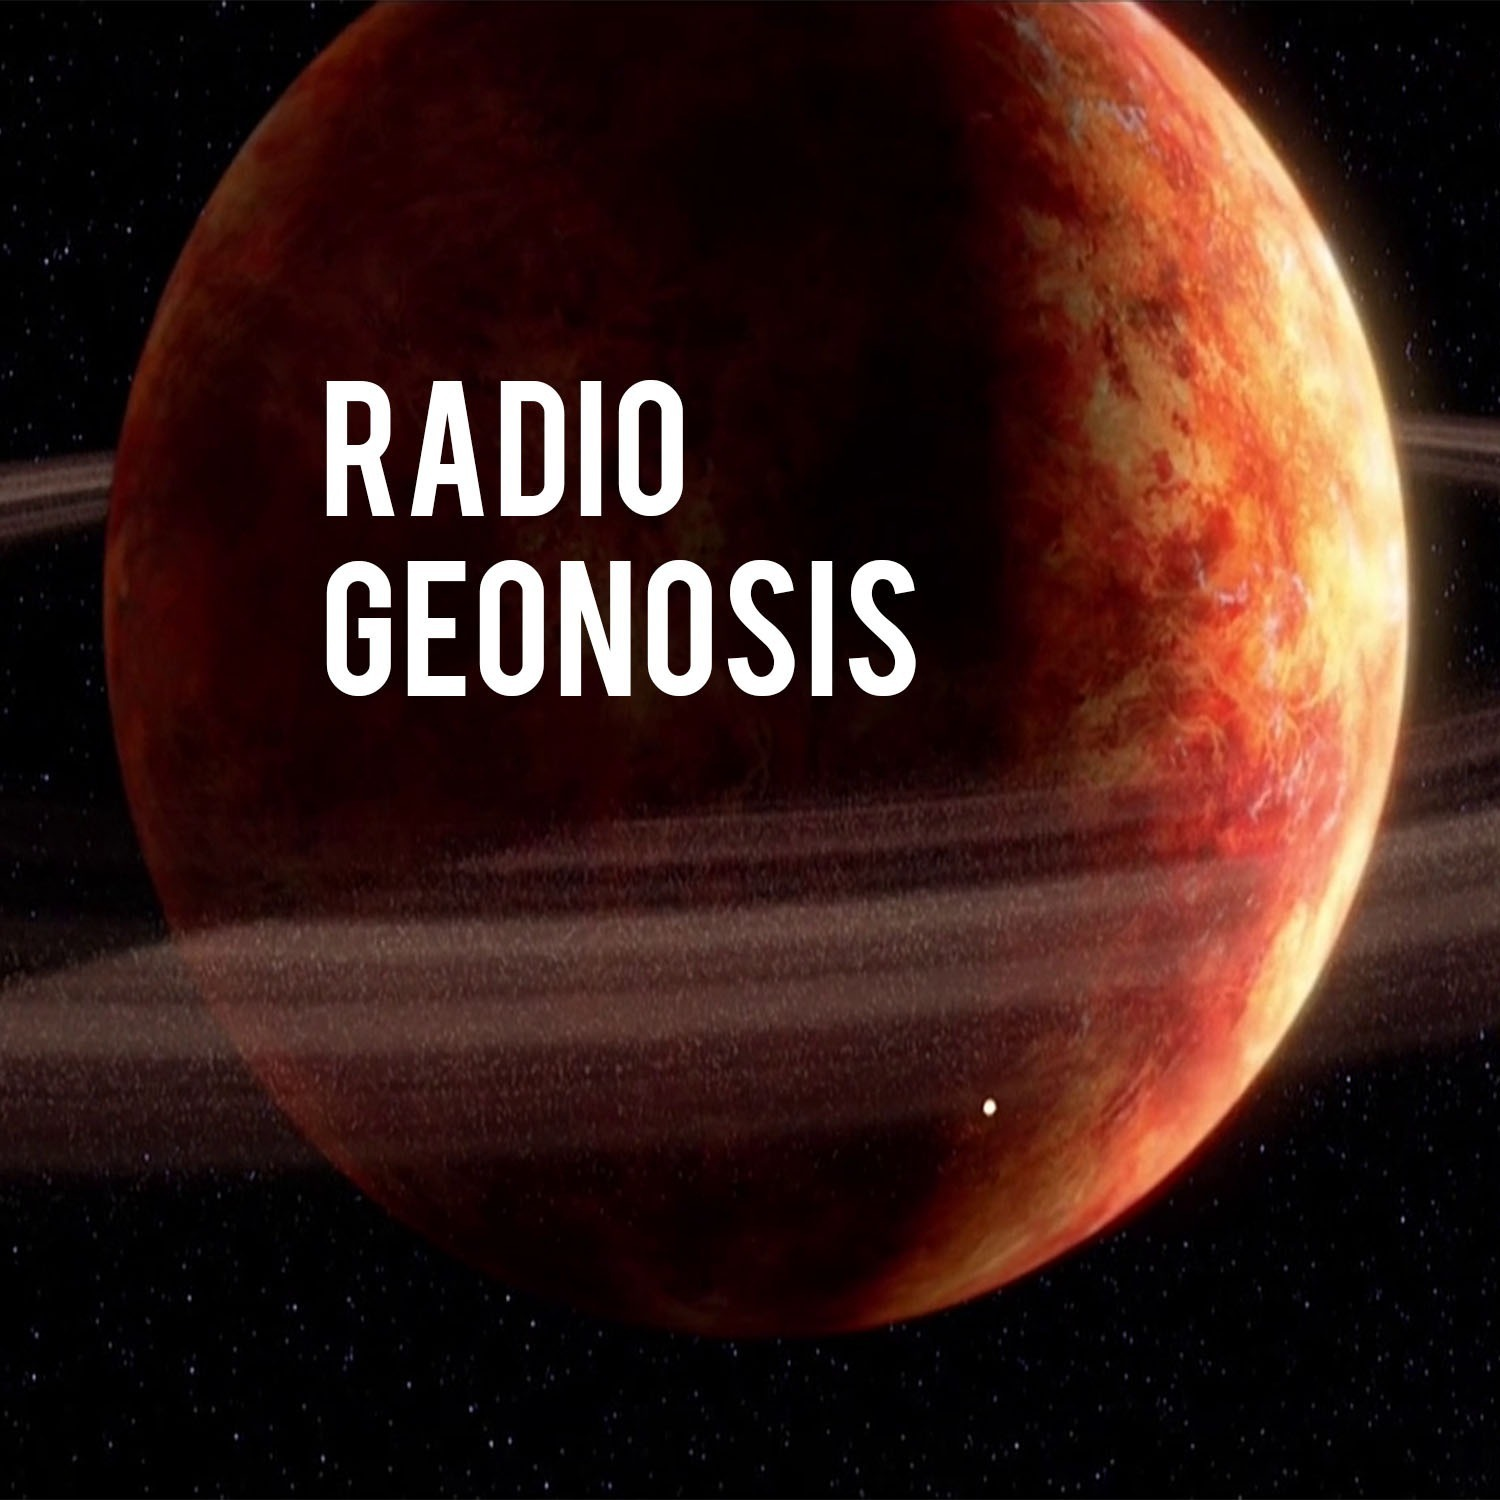 051 - Radio Geonosis Ep. 51 - May The Fourth